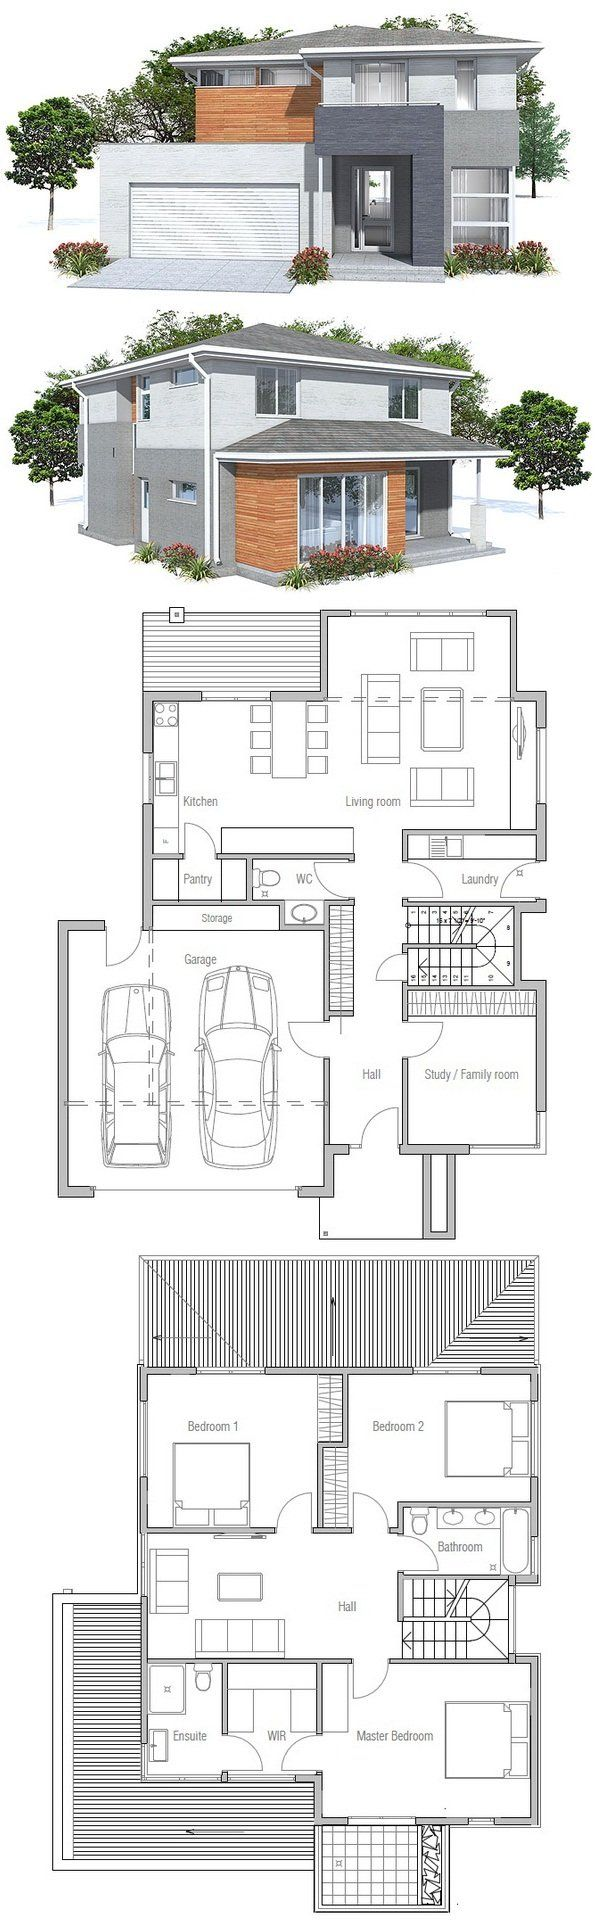 25 Best Ideas About Modern House Plans On Pinterest: modern house floor plans